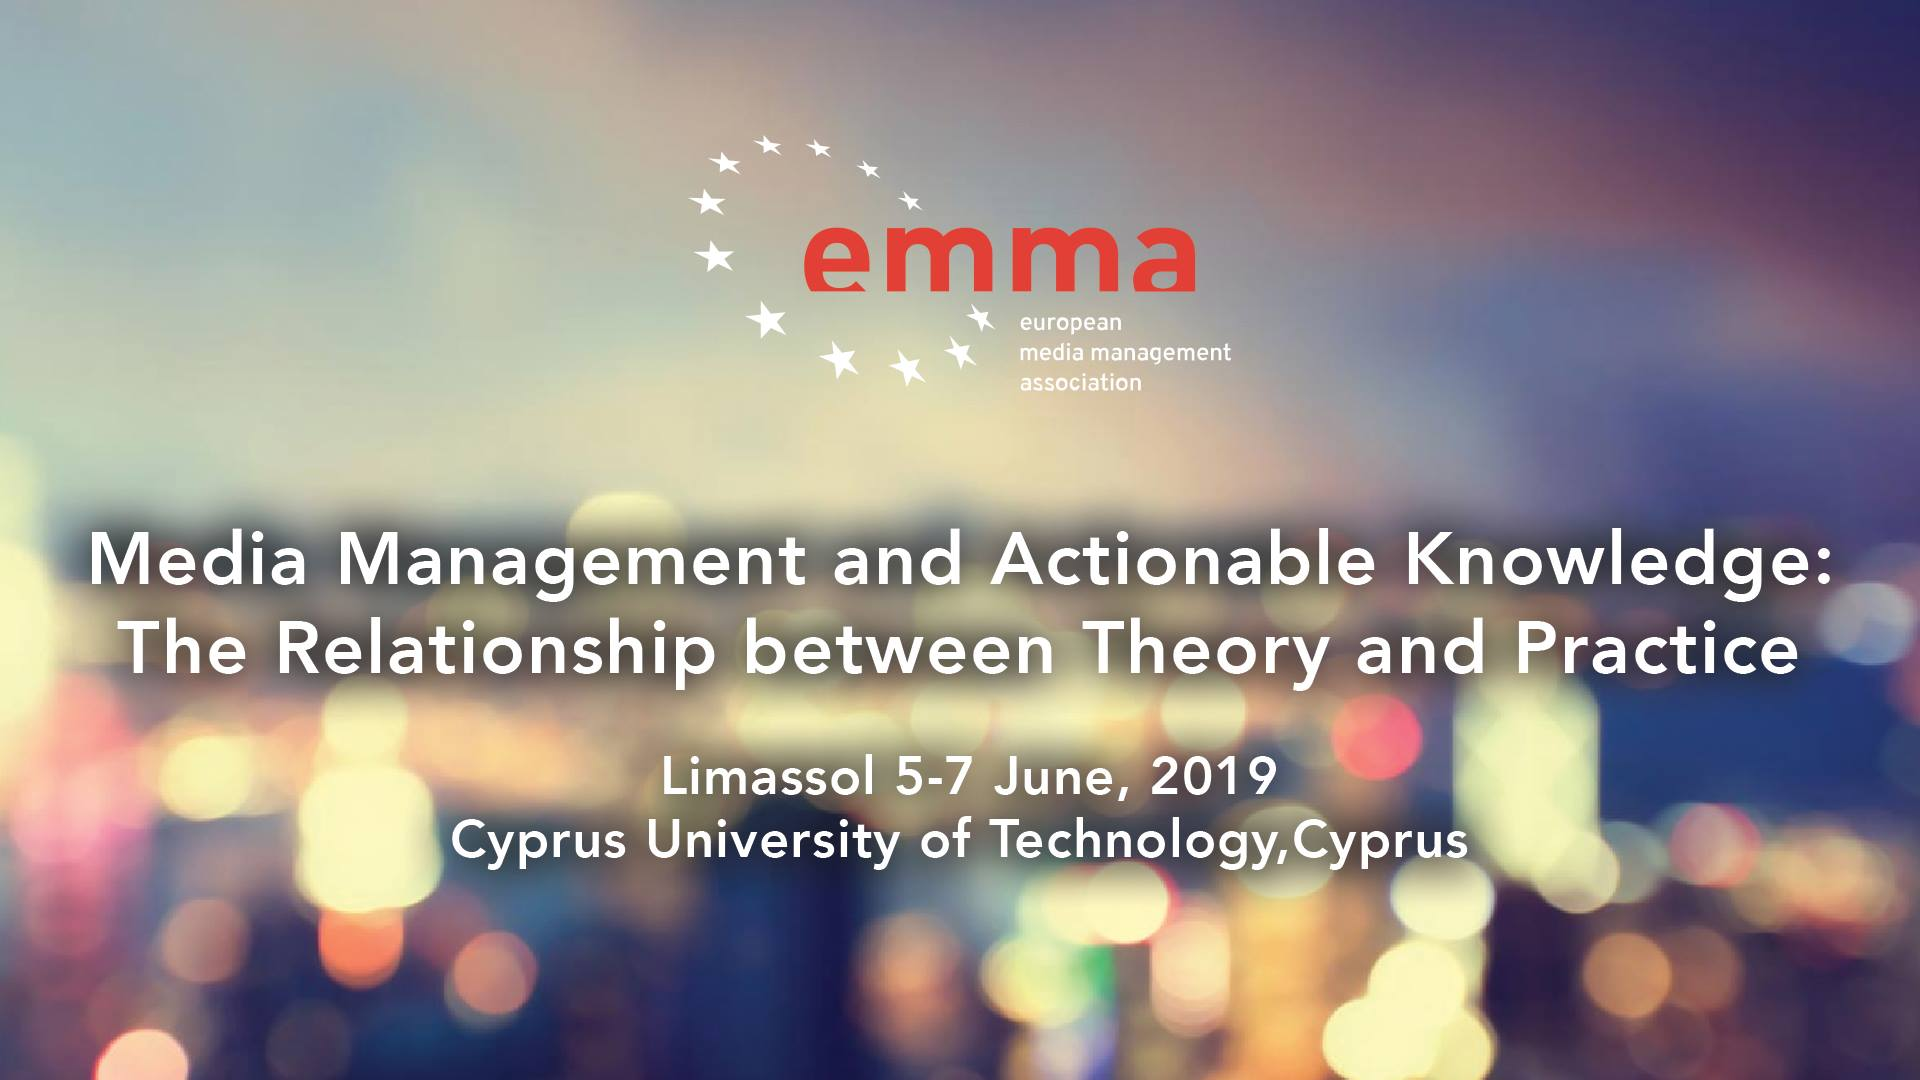 EMMA - Media Management and Actionable Knowledge | 5-7 June 2019 cyprus cyprusinno event events